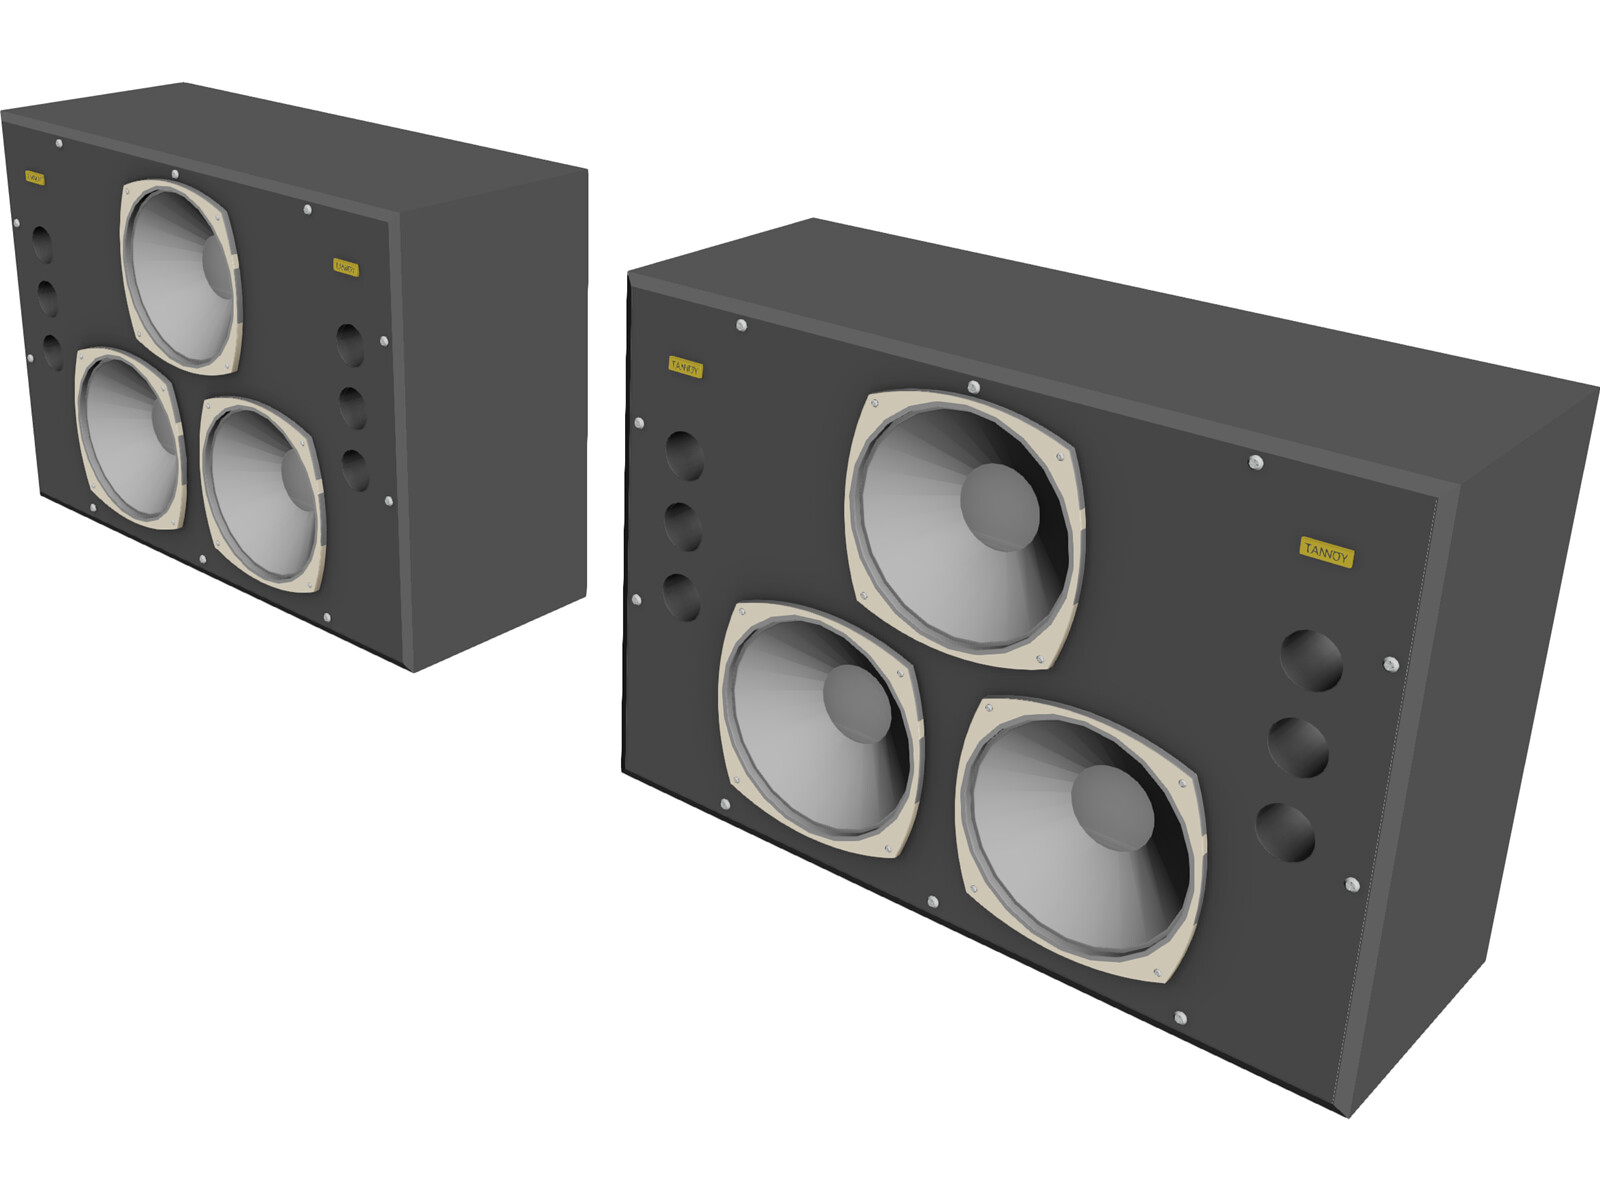 Tannoy Dreadnought Studio Monitor Speakers